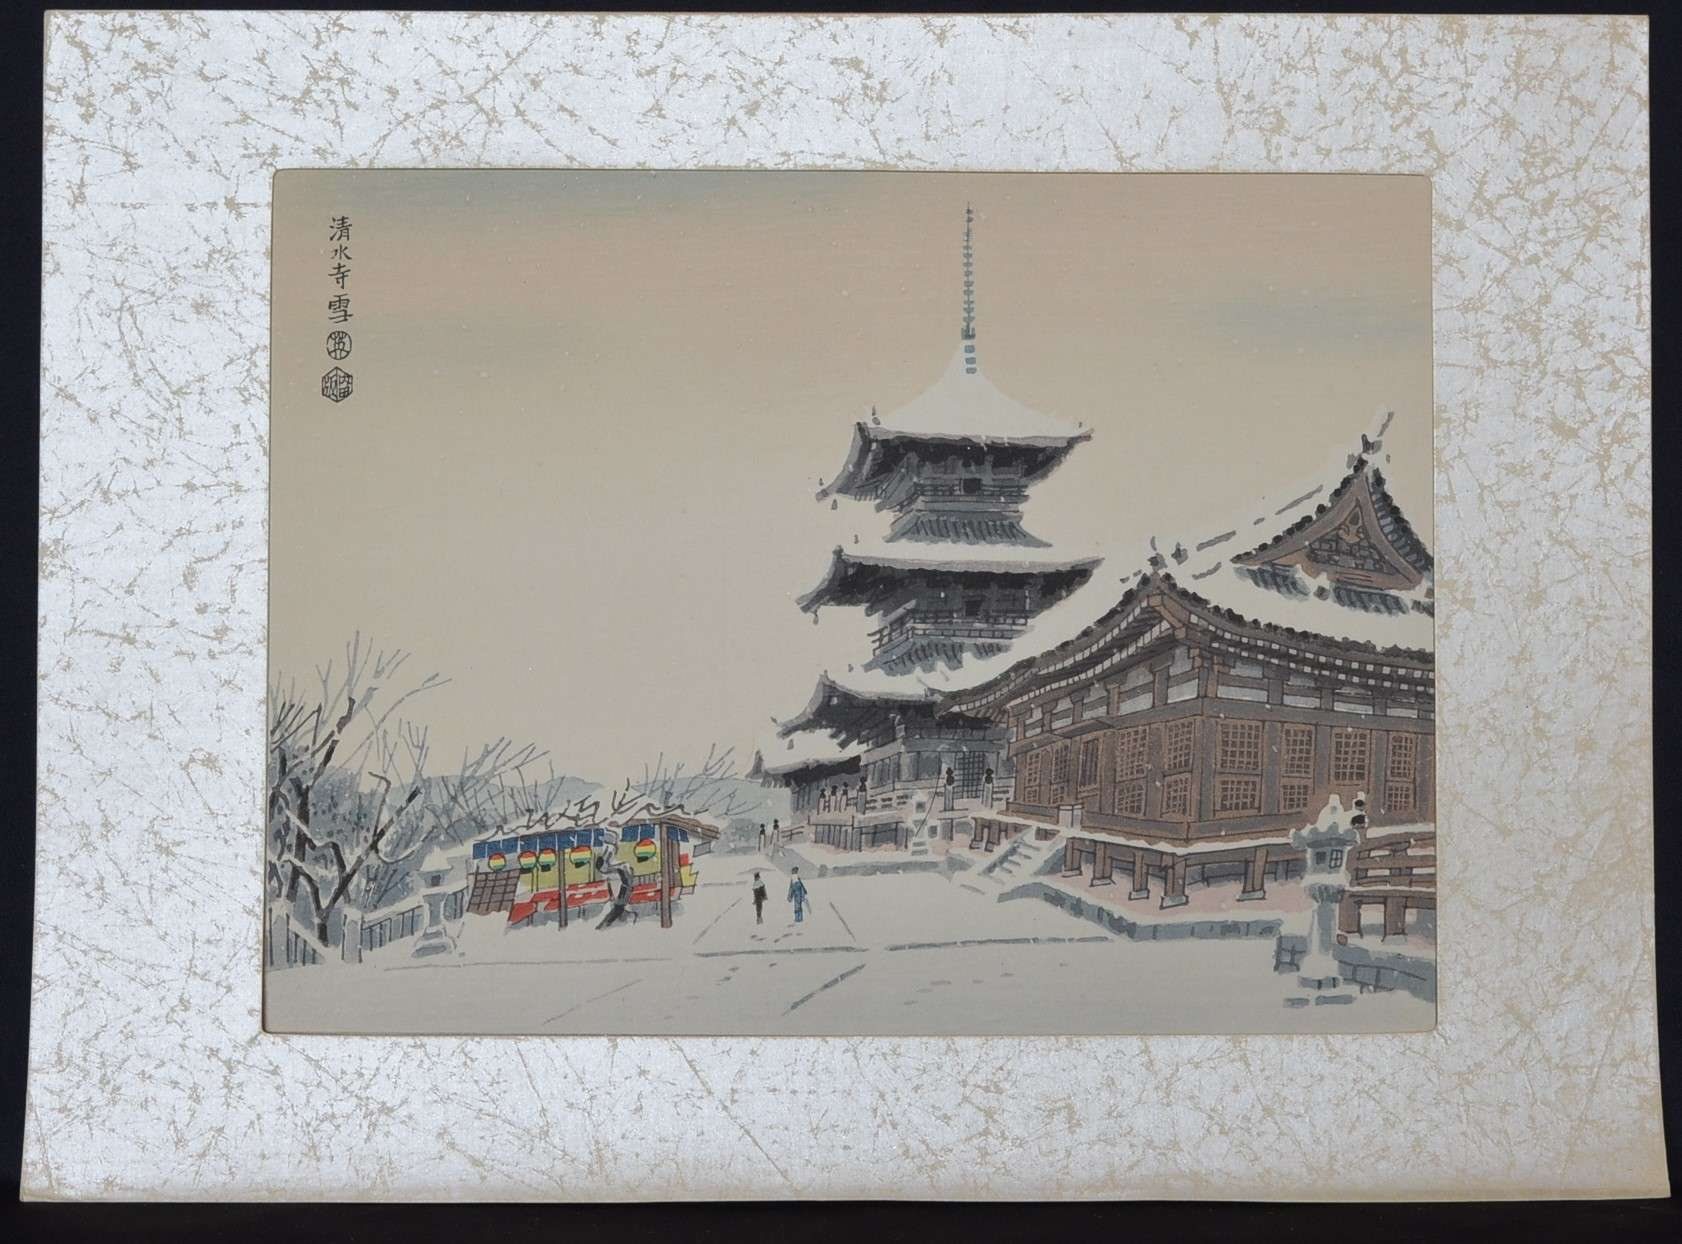 6. THE SNOW SCENE OF KIYOMISU TEMPLE IN KYOTO